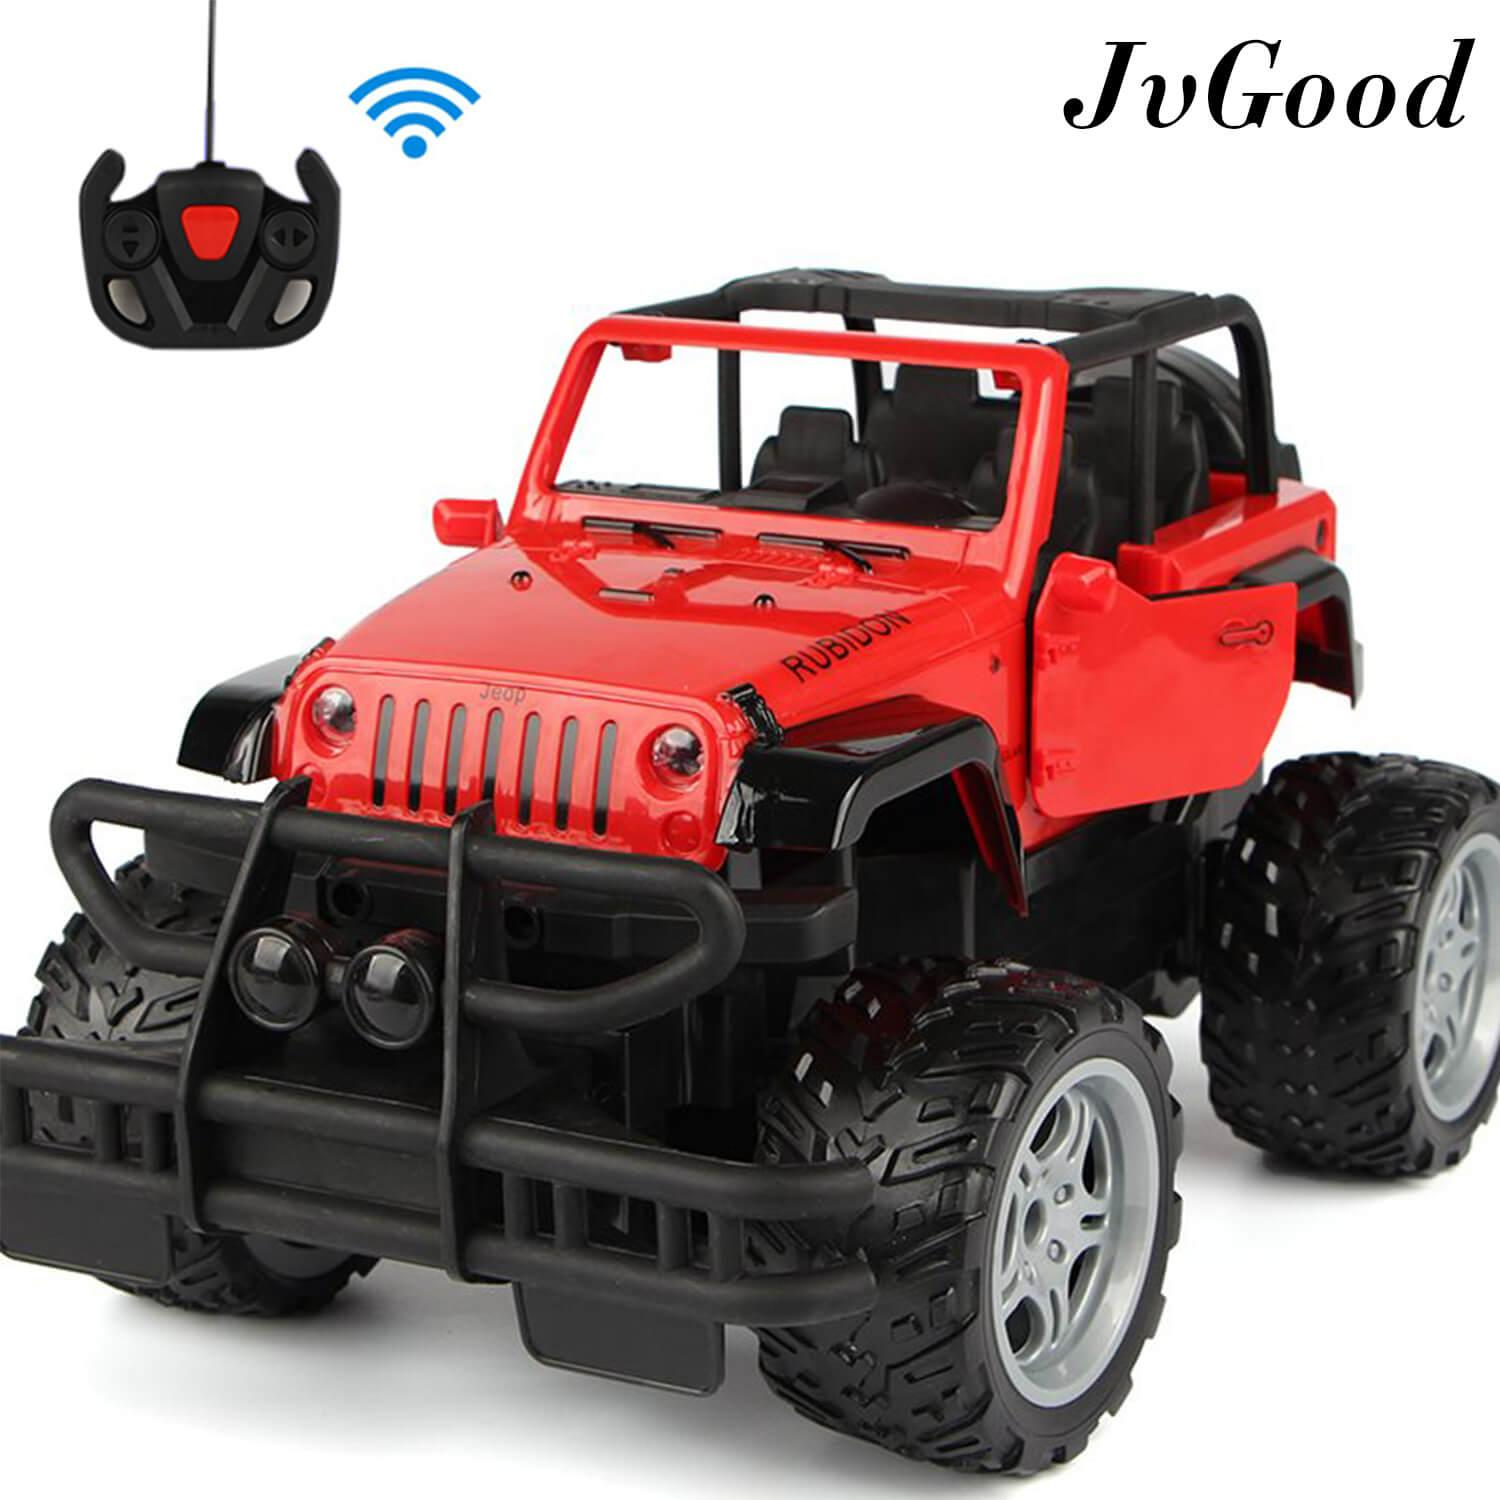 Jvgood Electric Rc Vehicles Cars Rock Crawlers Remote Control Toy Cars Radio Controlled Off-Road Vehicles Rc Climbing Cars Rc Drift Cars Electric Racing Car Monster Trunk Cars For Boys Kids By Jvgood.